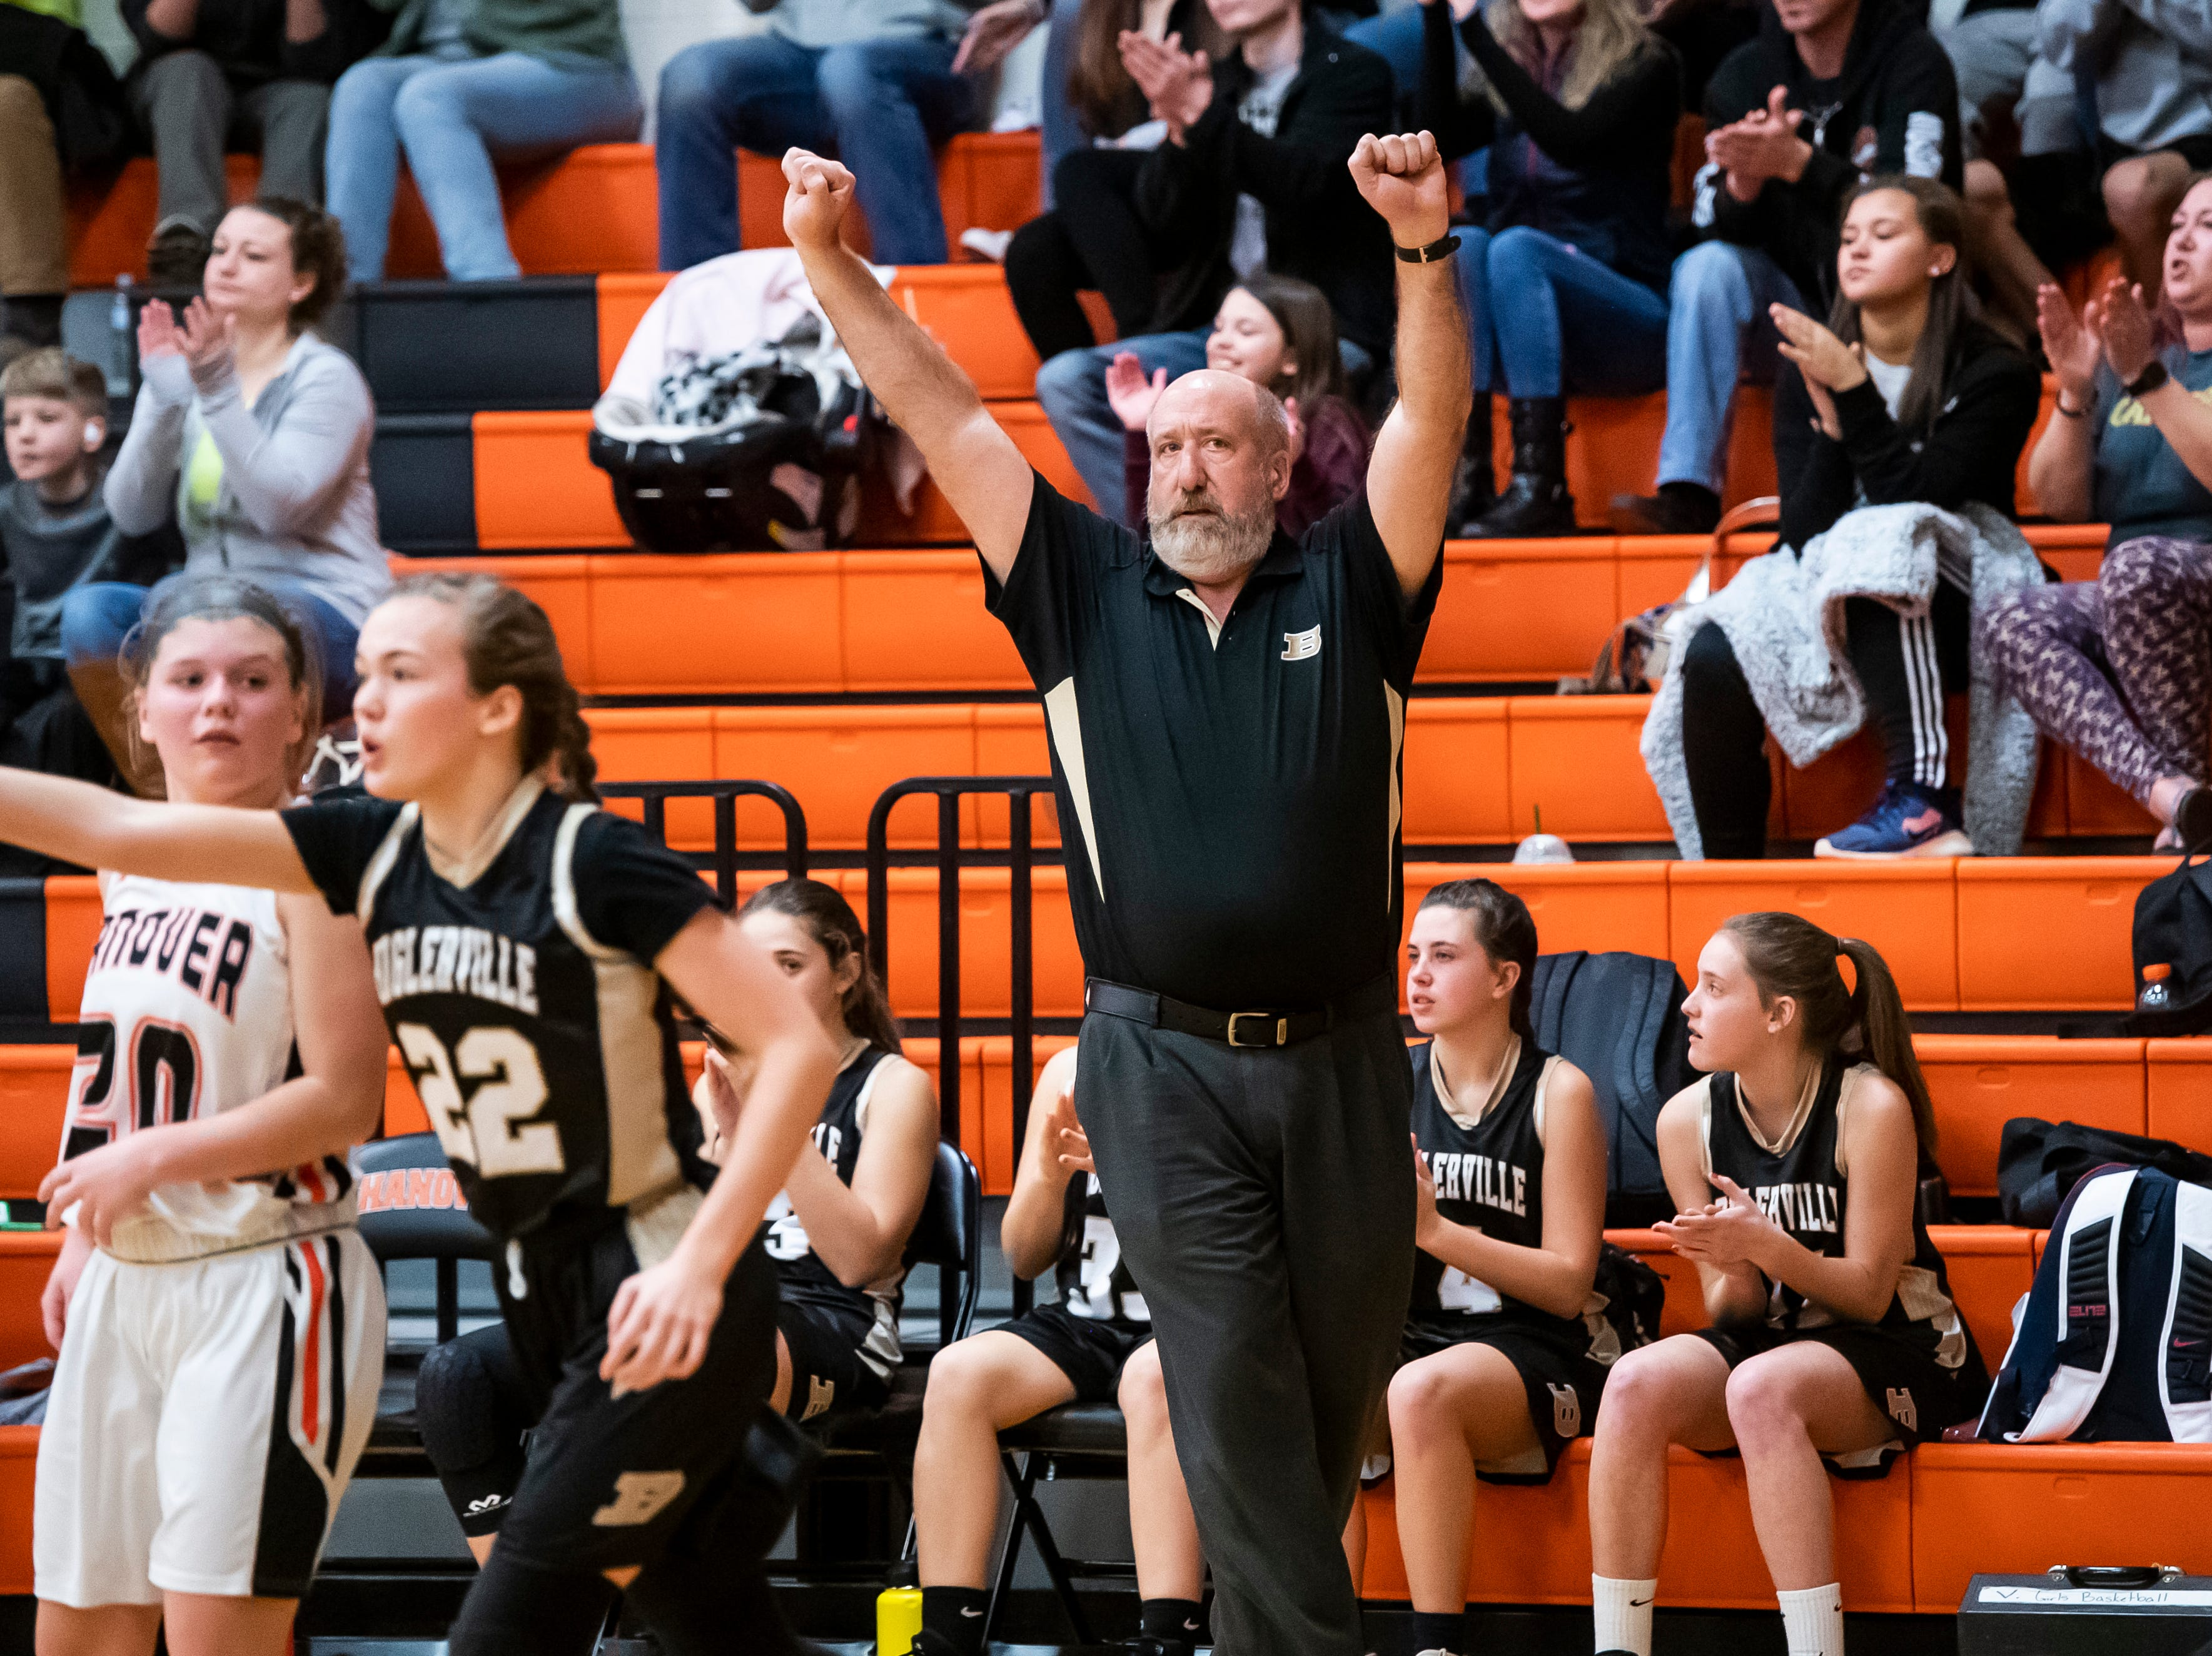 Biglerville head coach Jeff Kahlbaugh reacts after the Canners score a three-pointer during play against Hanover in the championship game of the Hanover Holiday Classic on Friday, December 28, 2018. Hanover won 30-20.